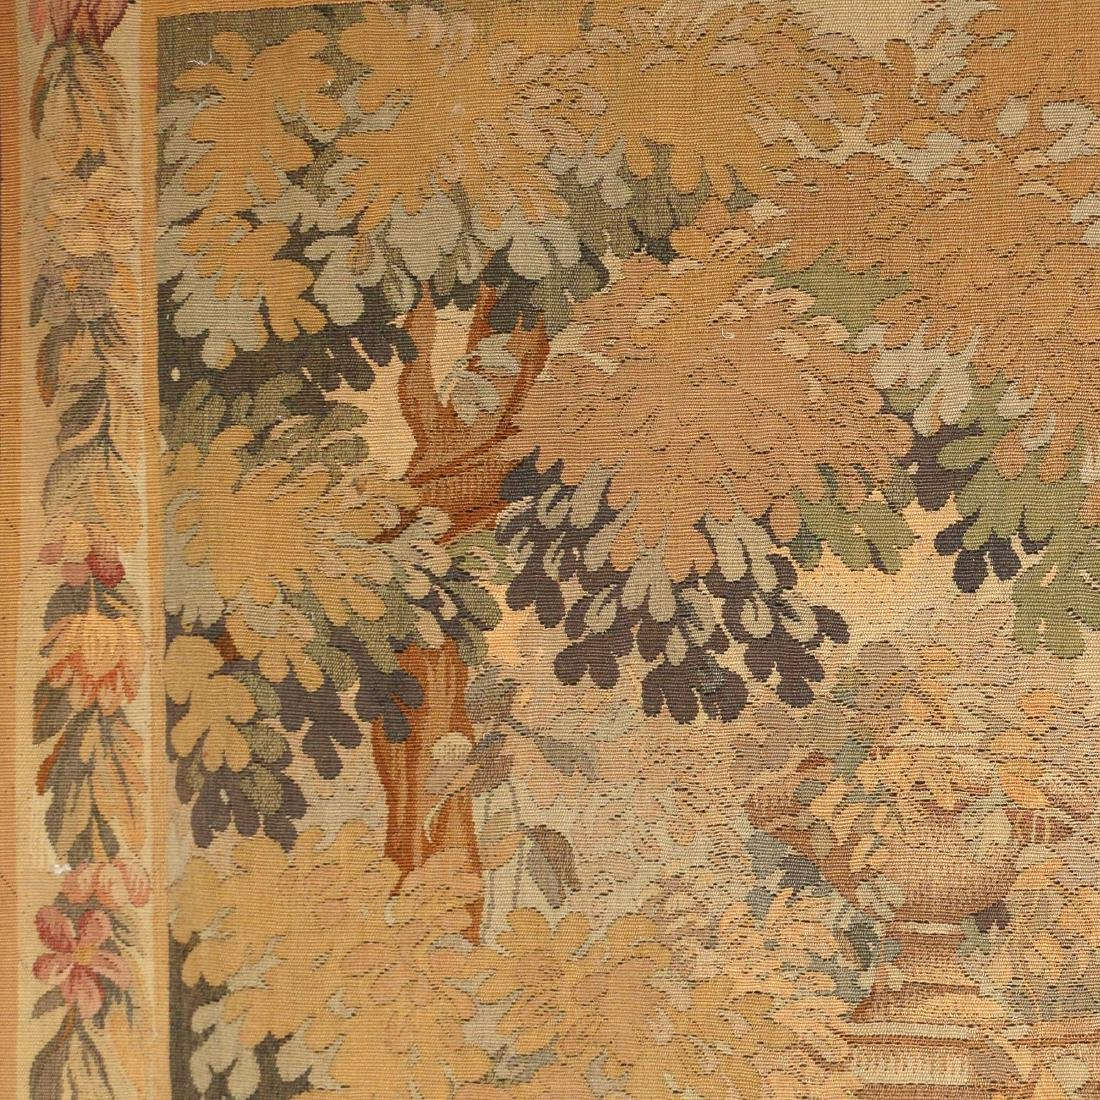 19th C. AUBUSSON TAPESTRY - 3